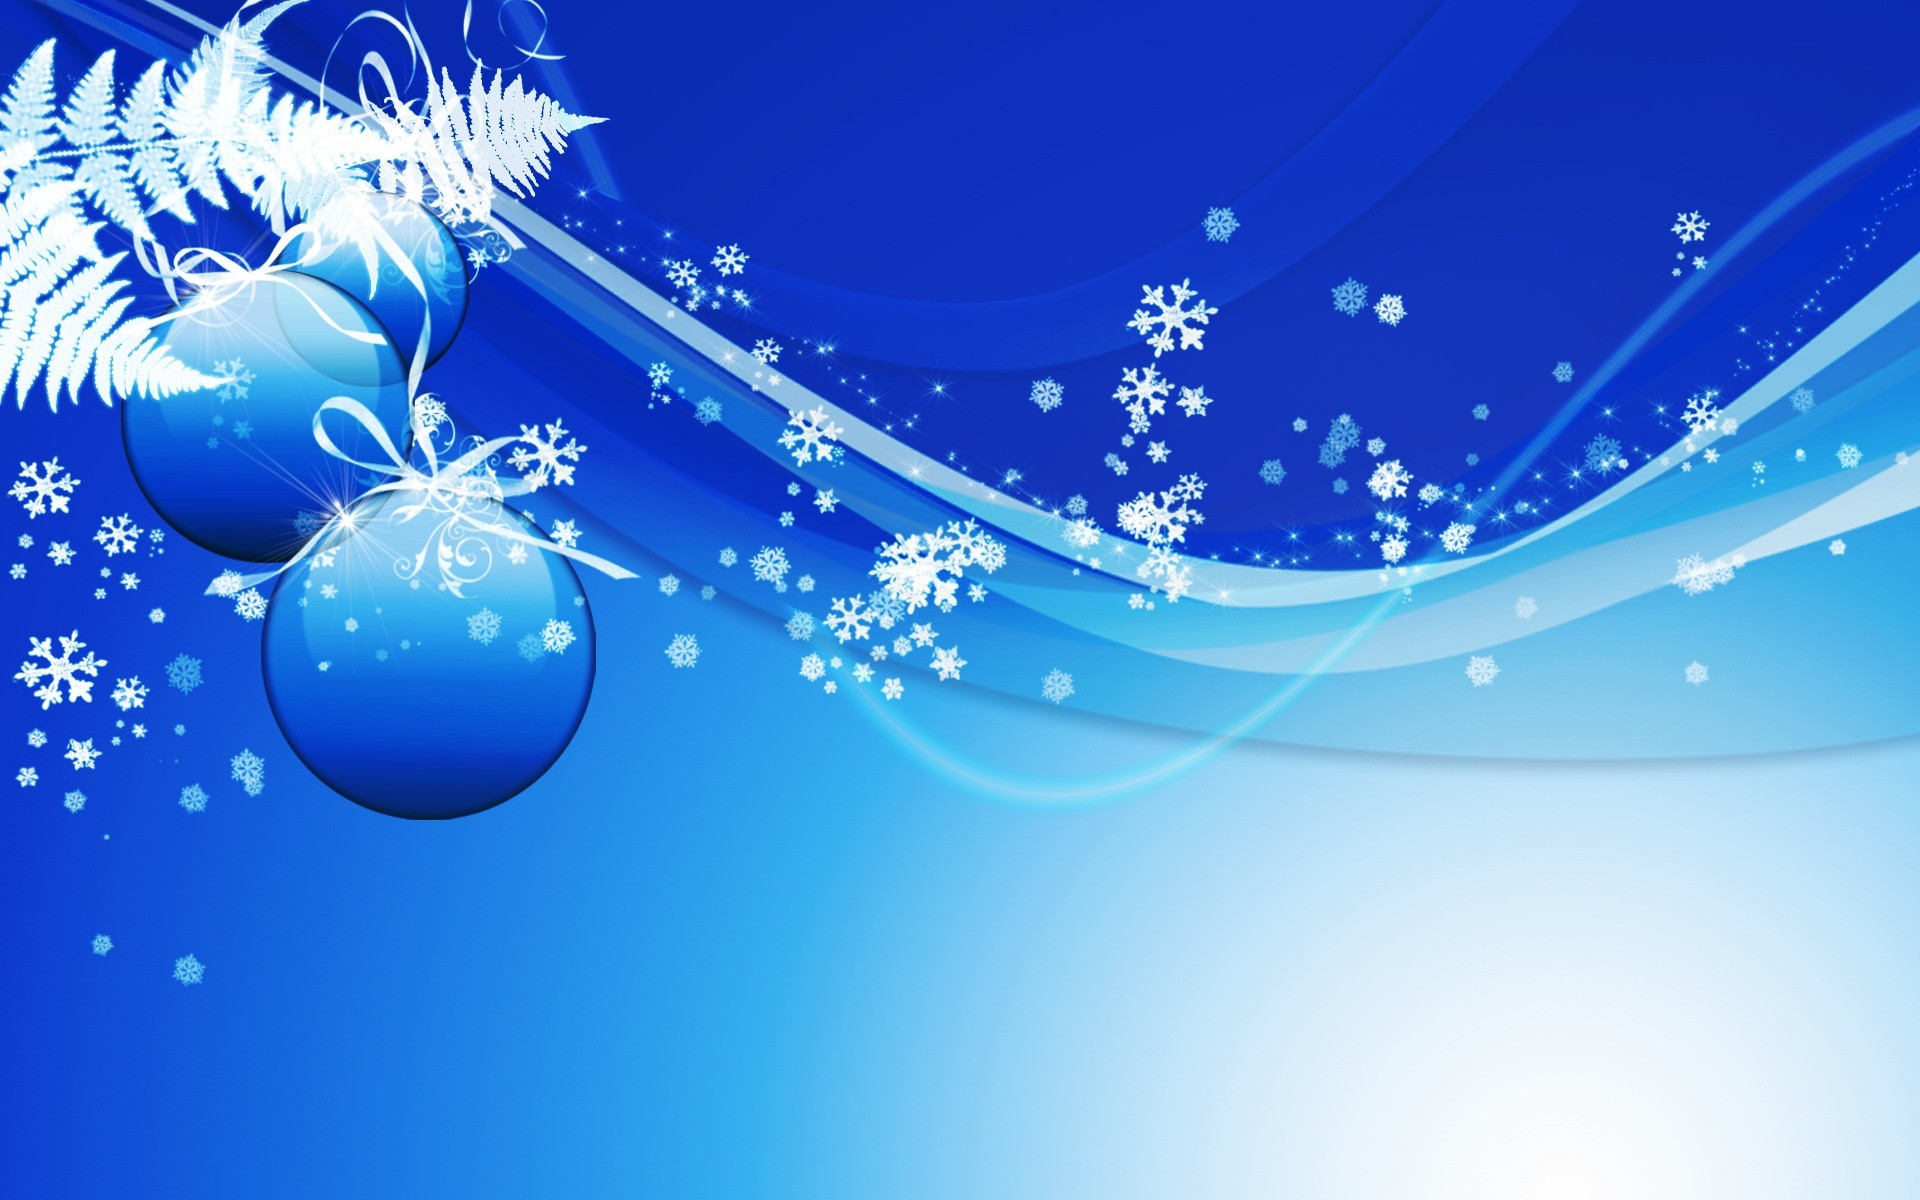 Go back to Free Christmas Wallpapers and Screensavers Next Image .